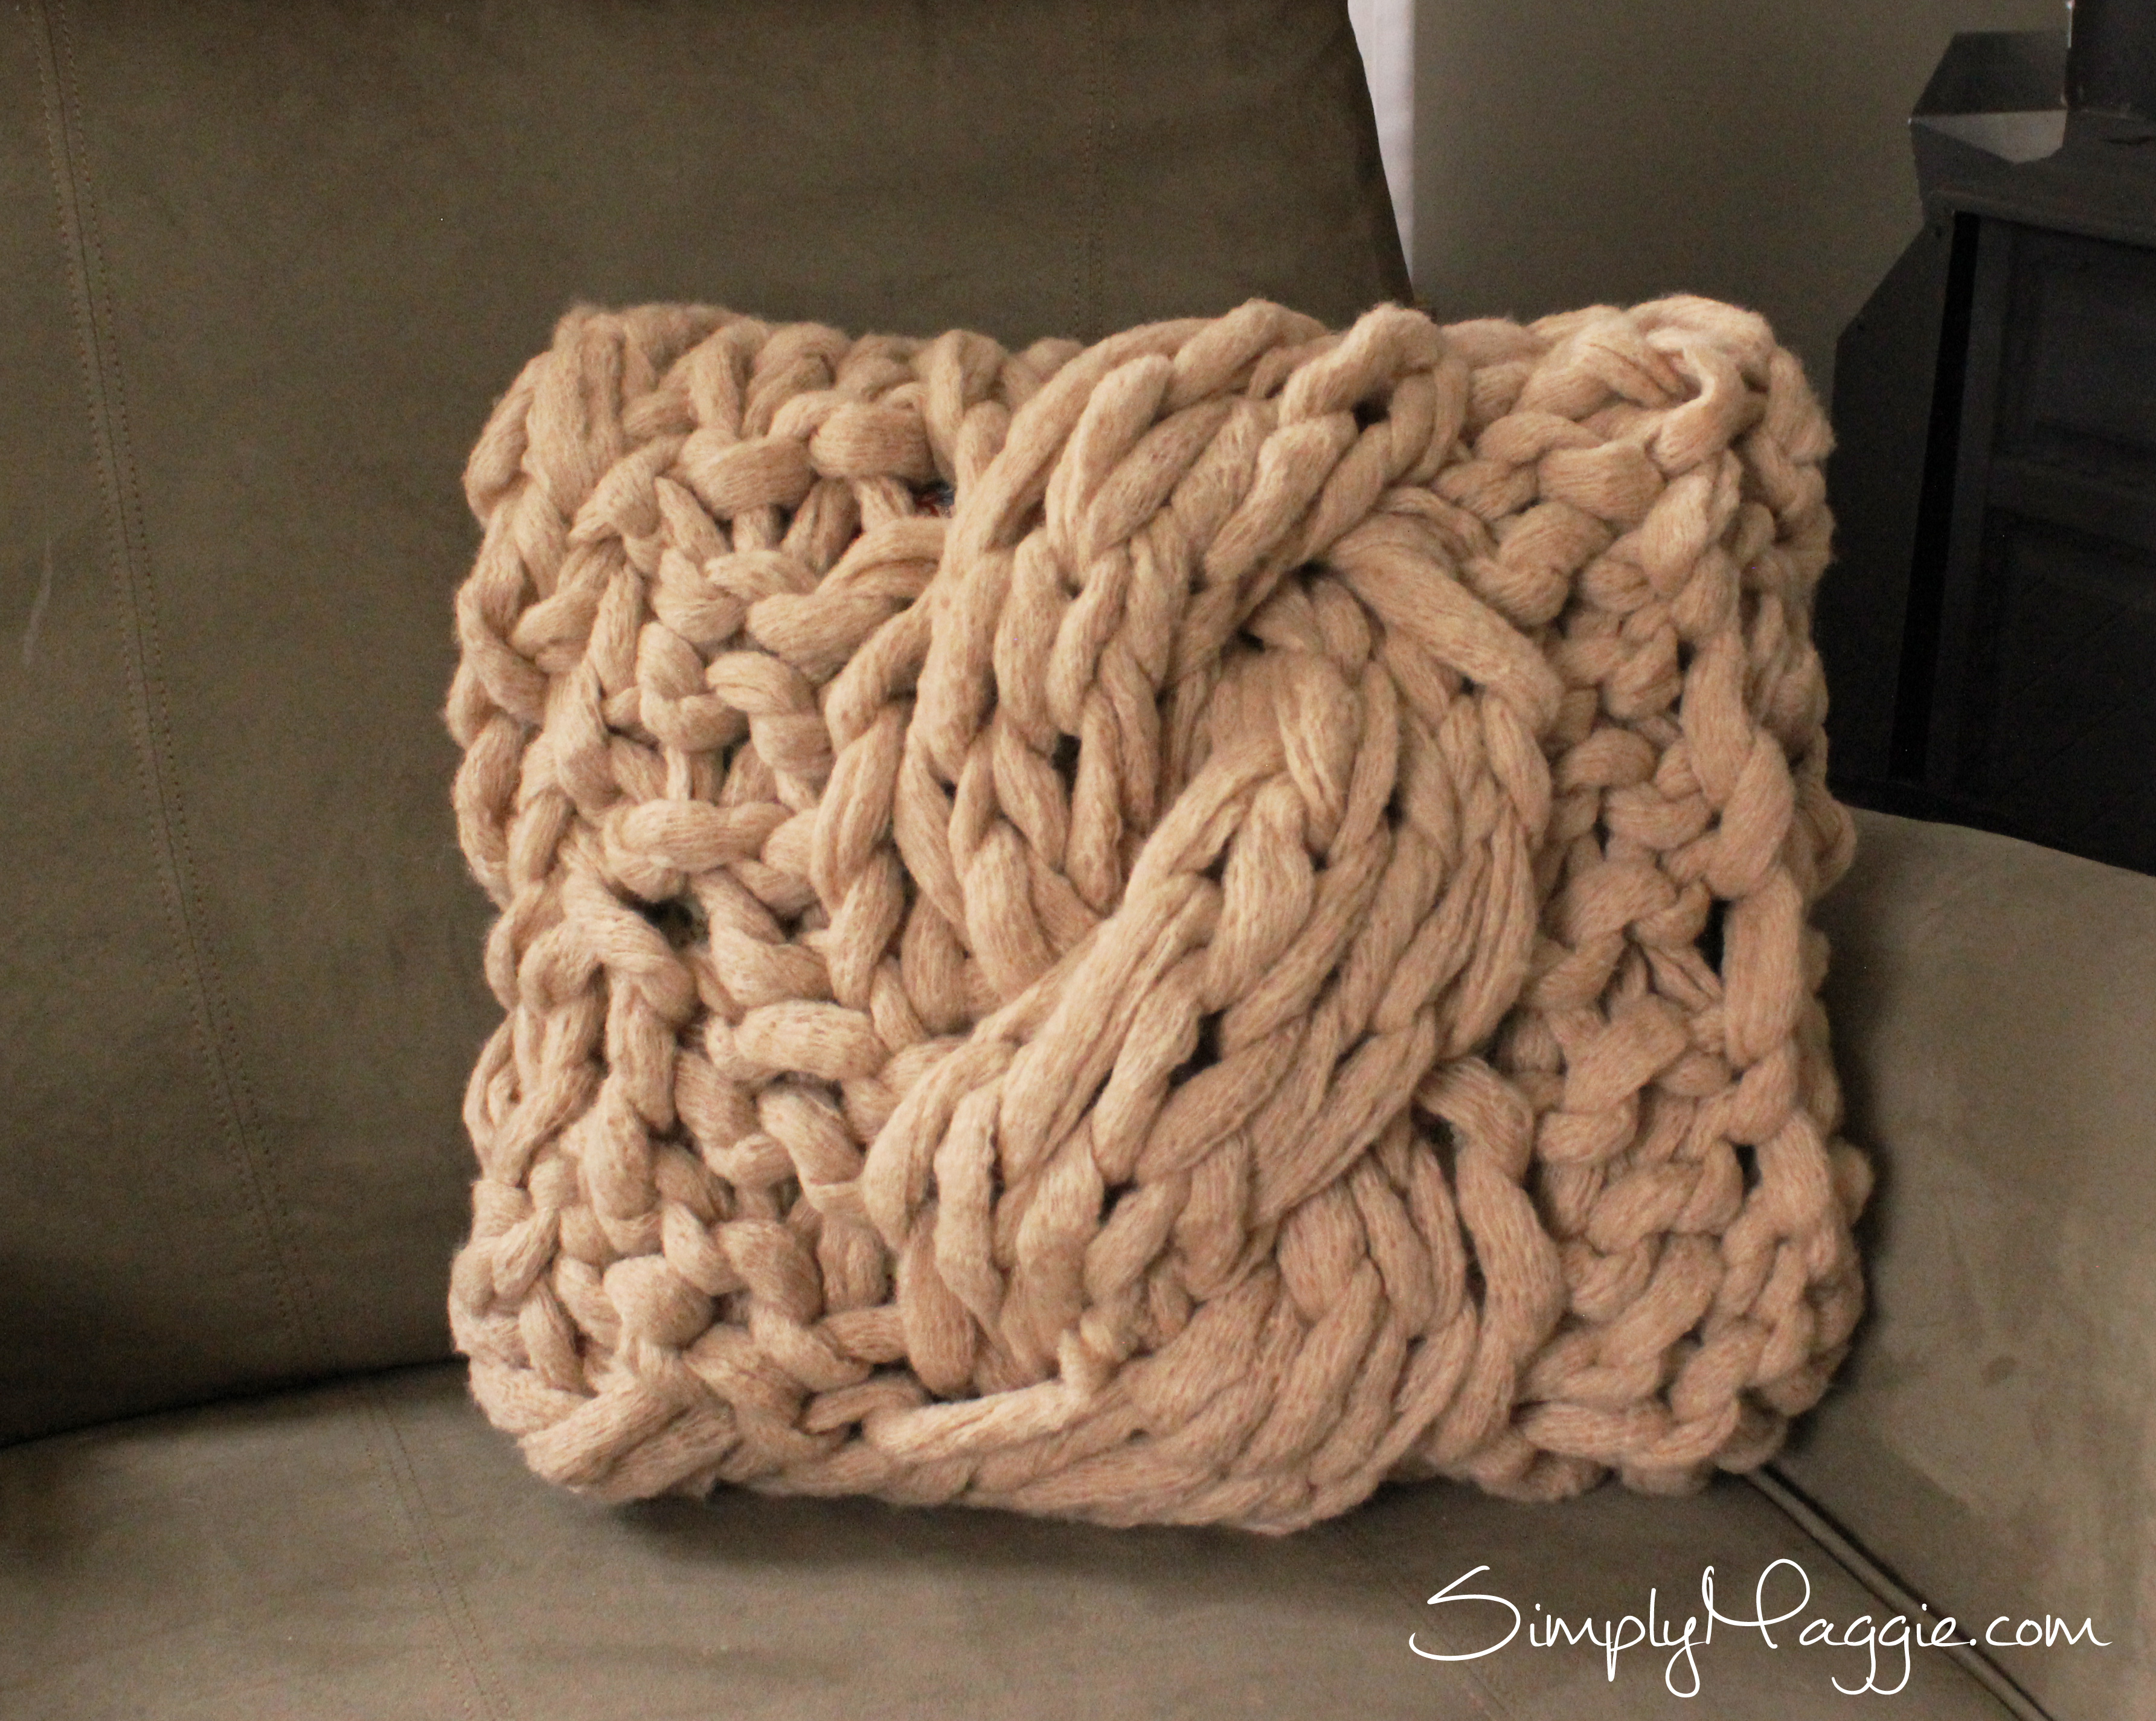 How To Arm Knit The Cable Stitch Including Pillow